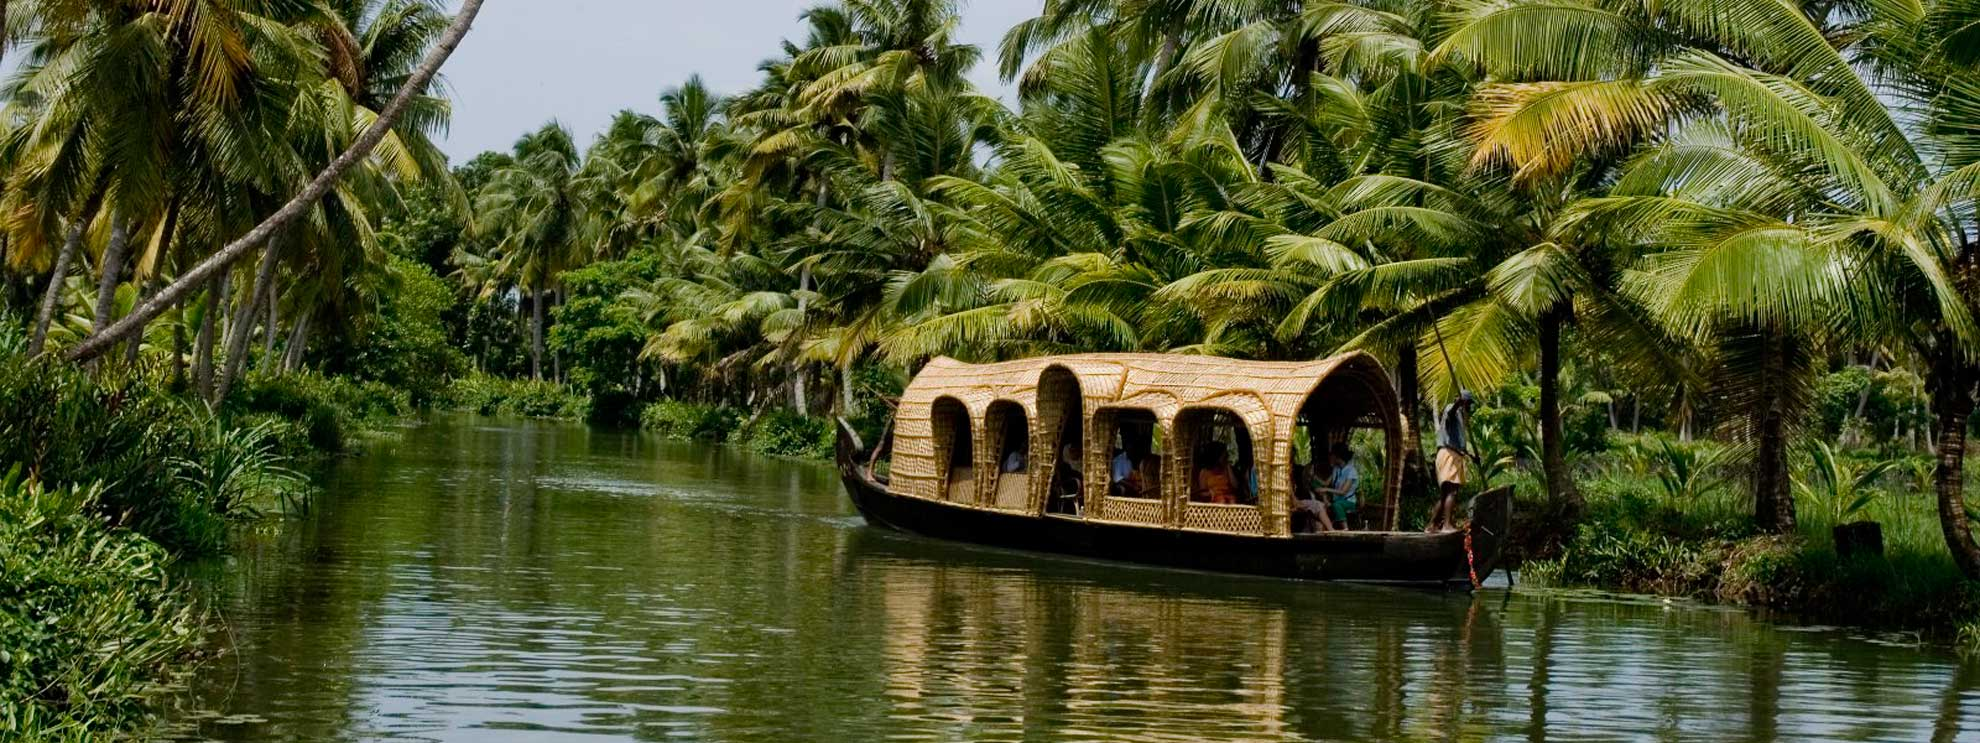 Top 10 places to visit in kerala god s own country for Top ten places to vacation